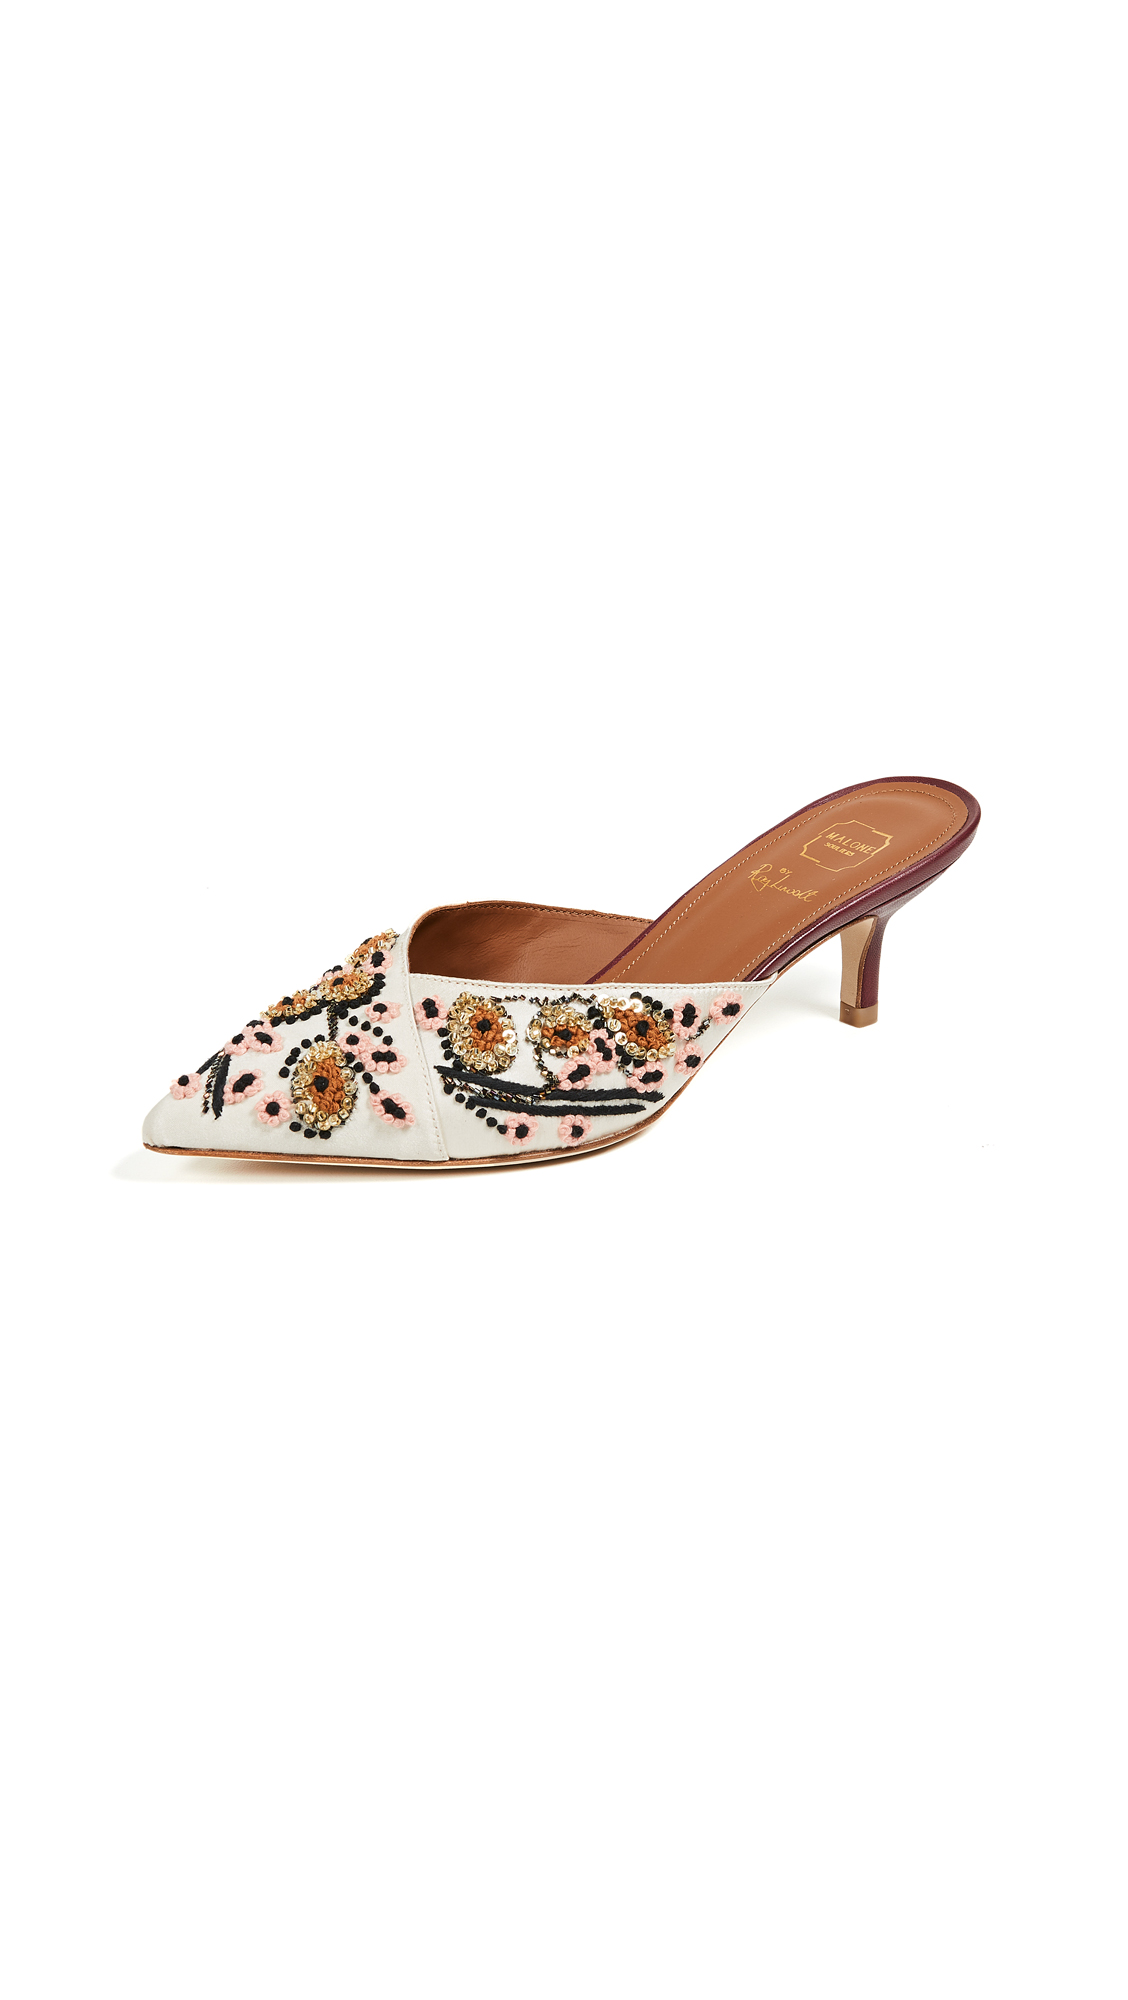 Malone Souliers by Roy Luwolt Portia Mules - Peach/Gold/Burgundy